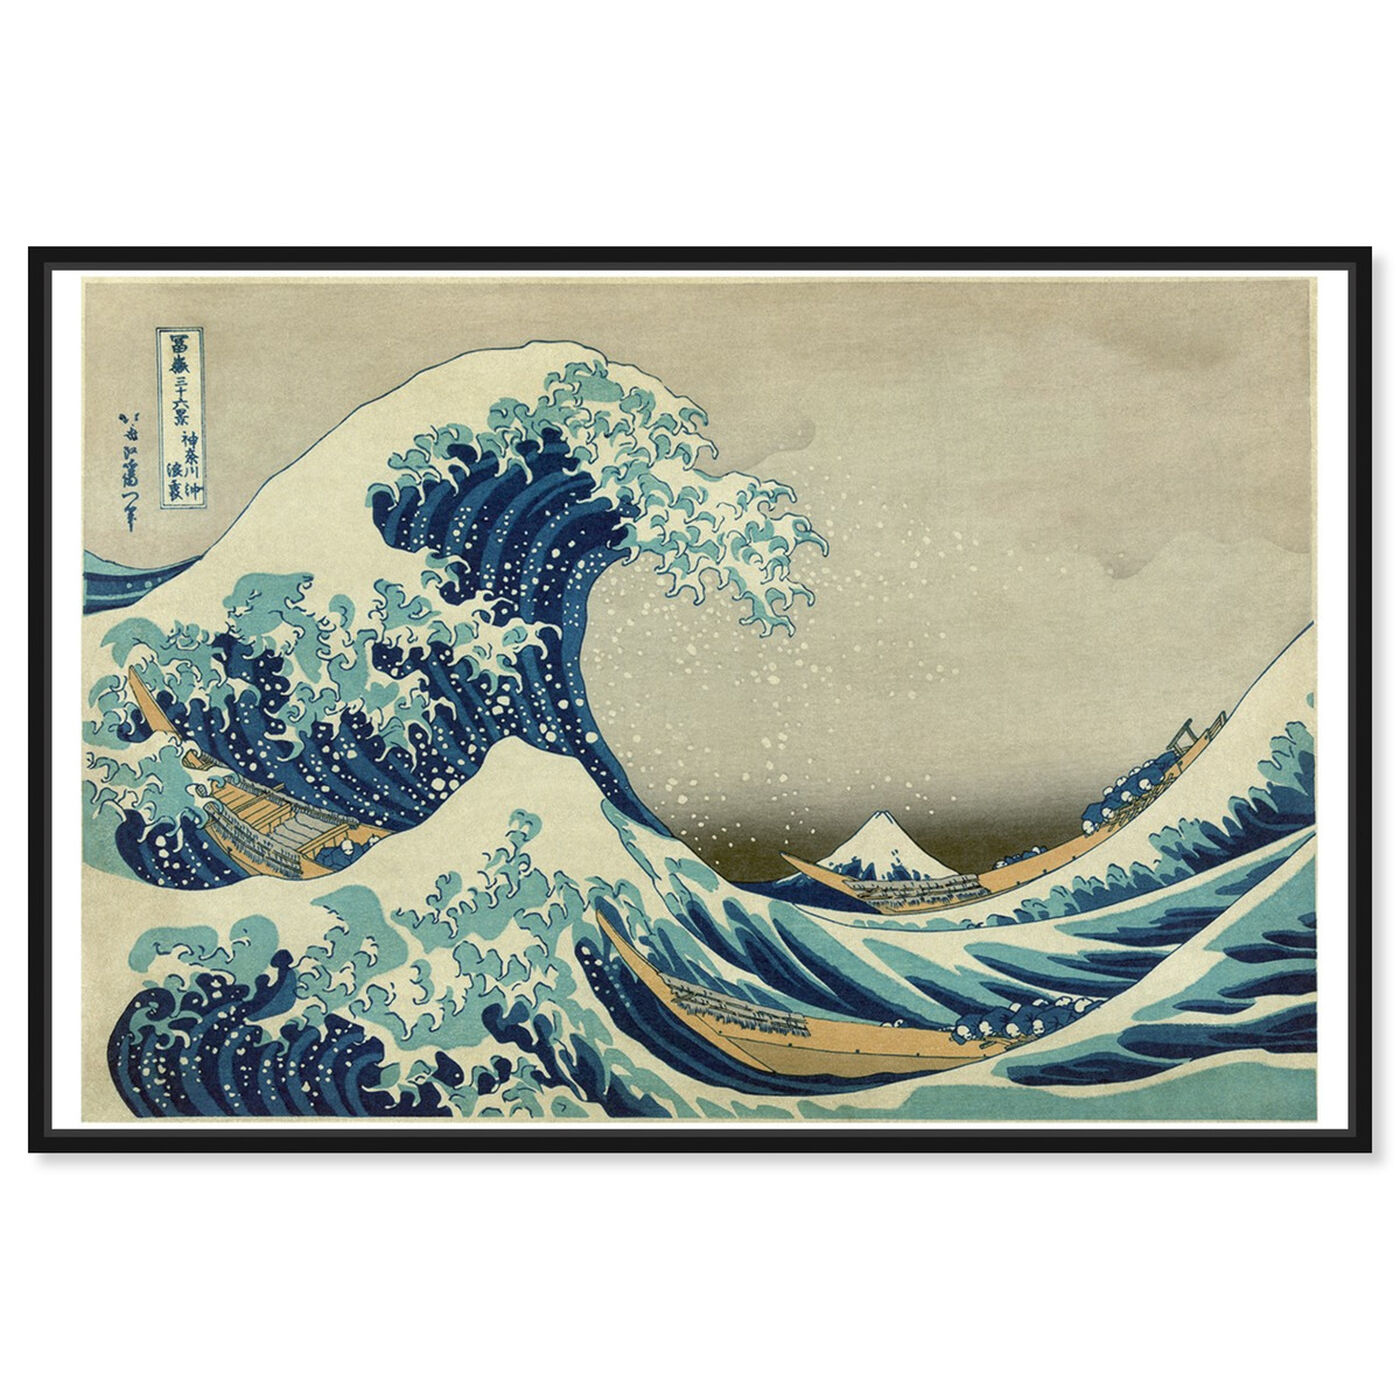 Front view of The Great Wave of Kanagawa featuring world and countries and asian cultures art.